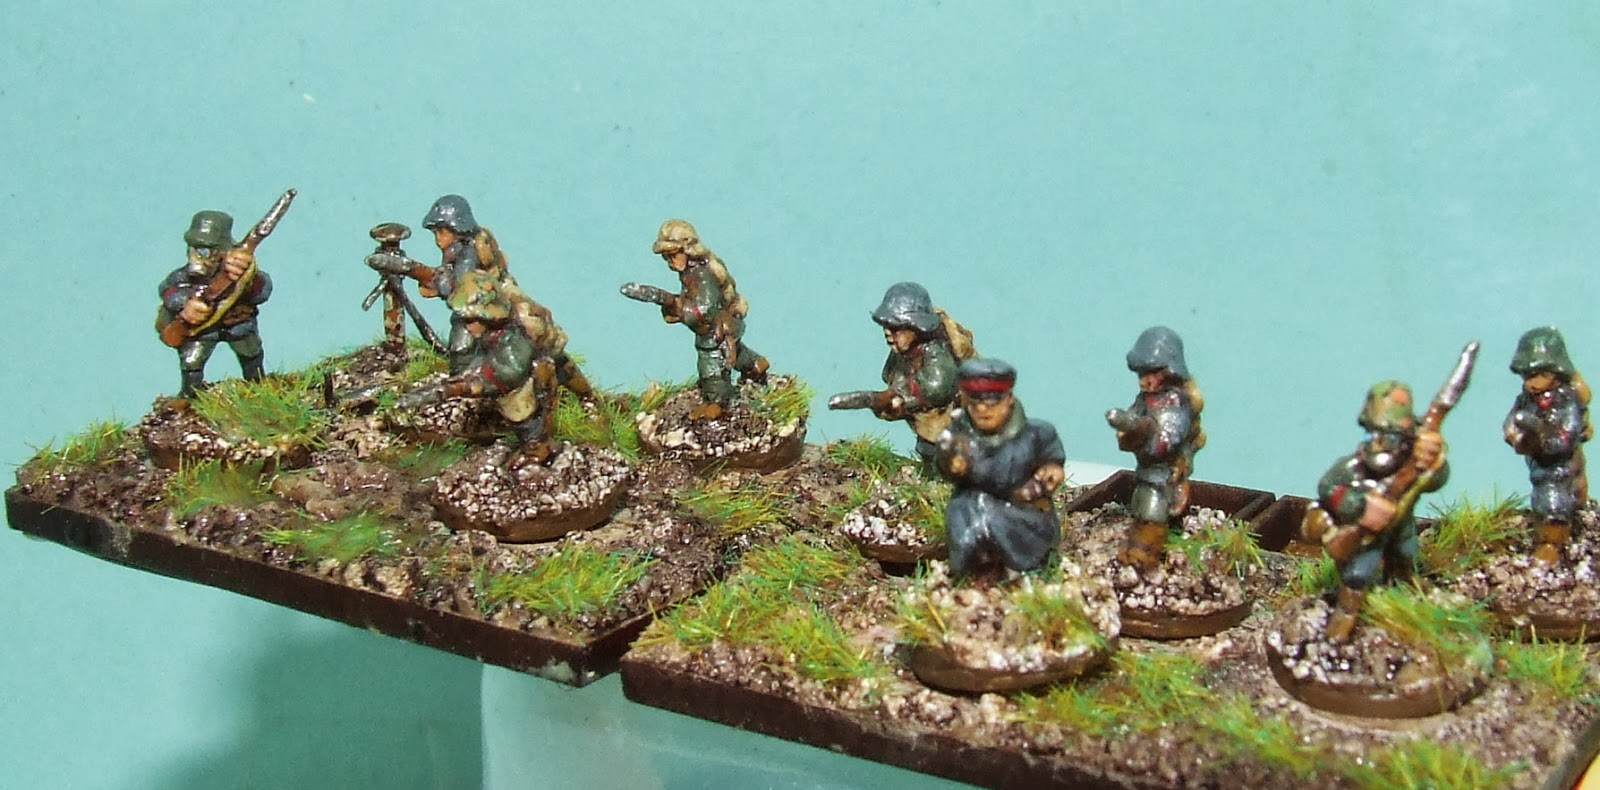 Basing 1:72/20mm ACW? - Forum - DakkaDakka | Roll the dice to see if